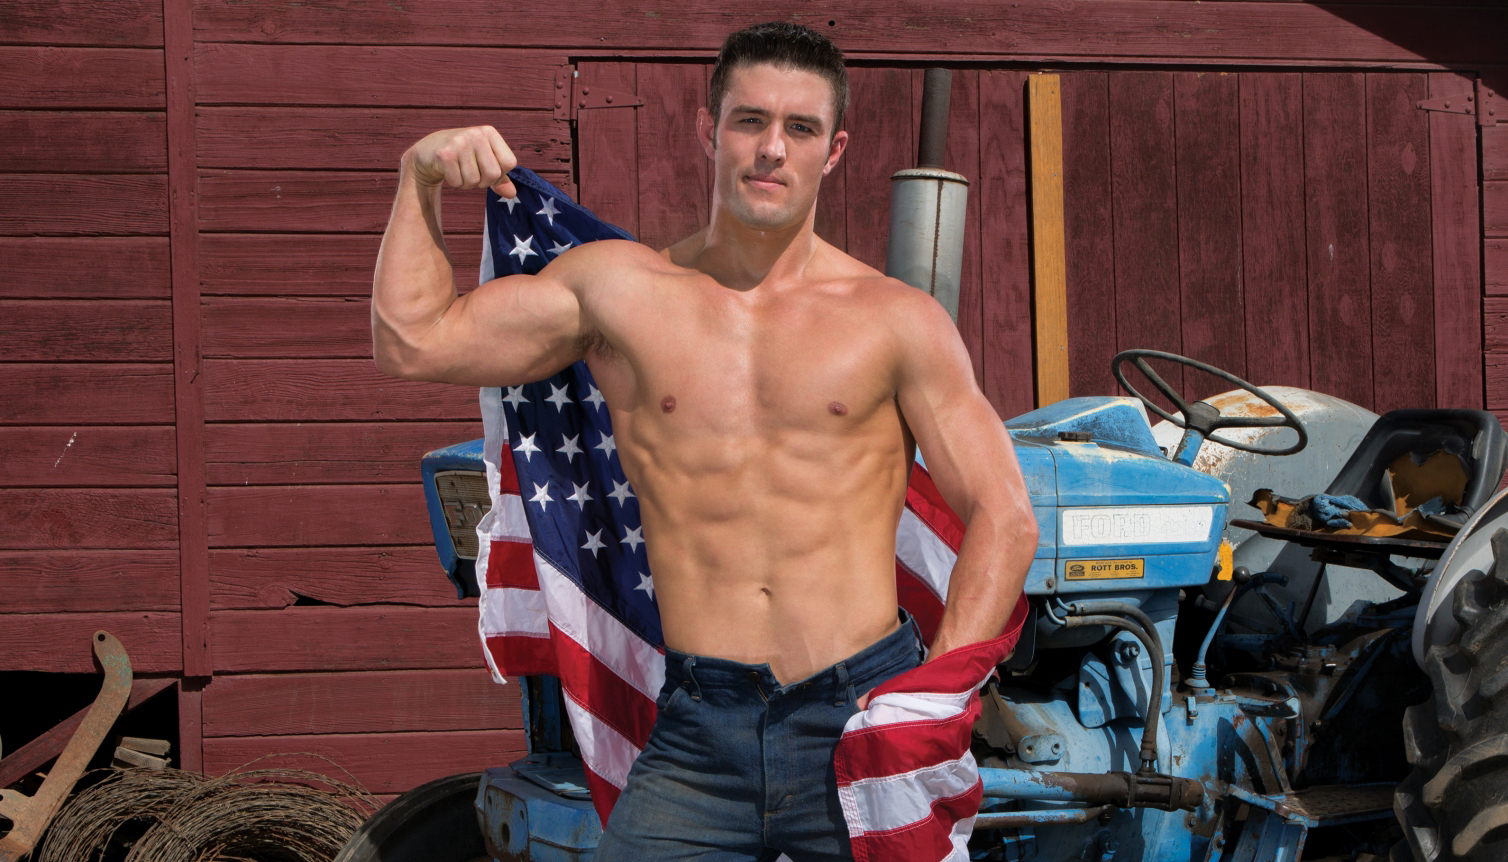 Ryan Rose in Saddle Up by gay porn studio Hot House.